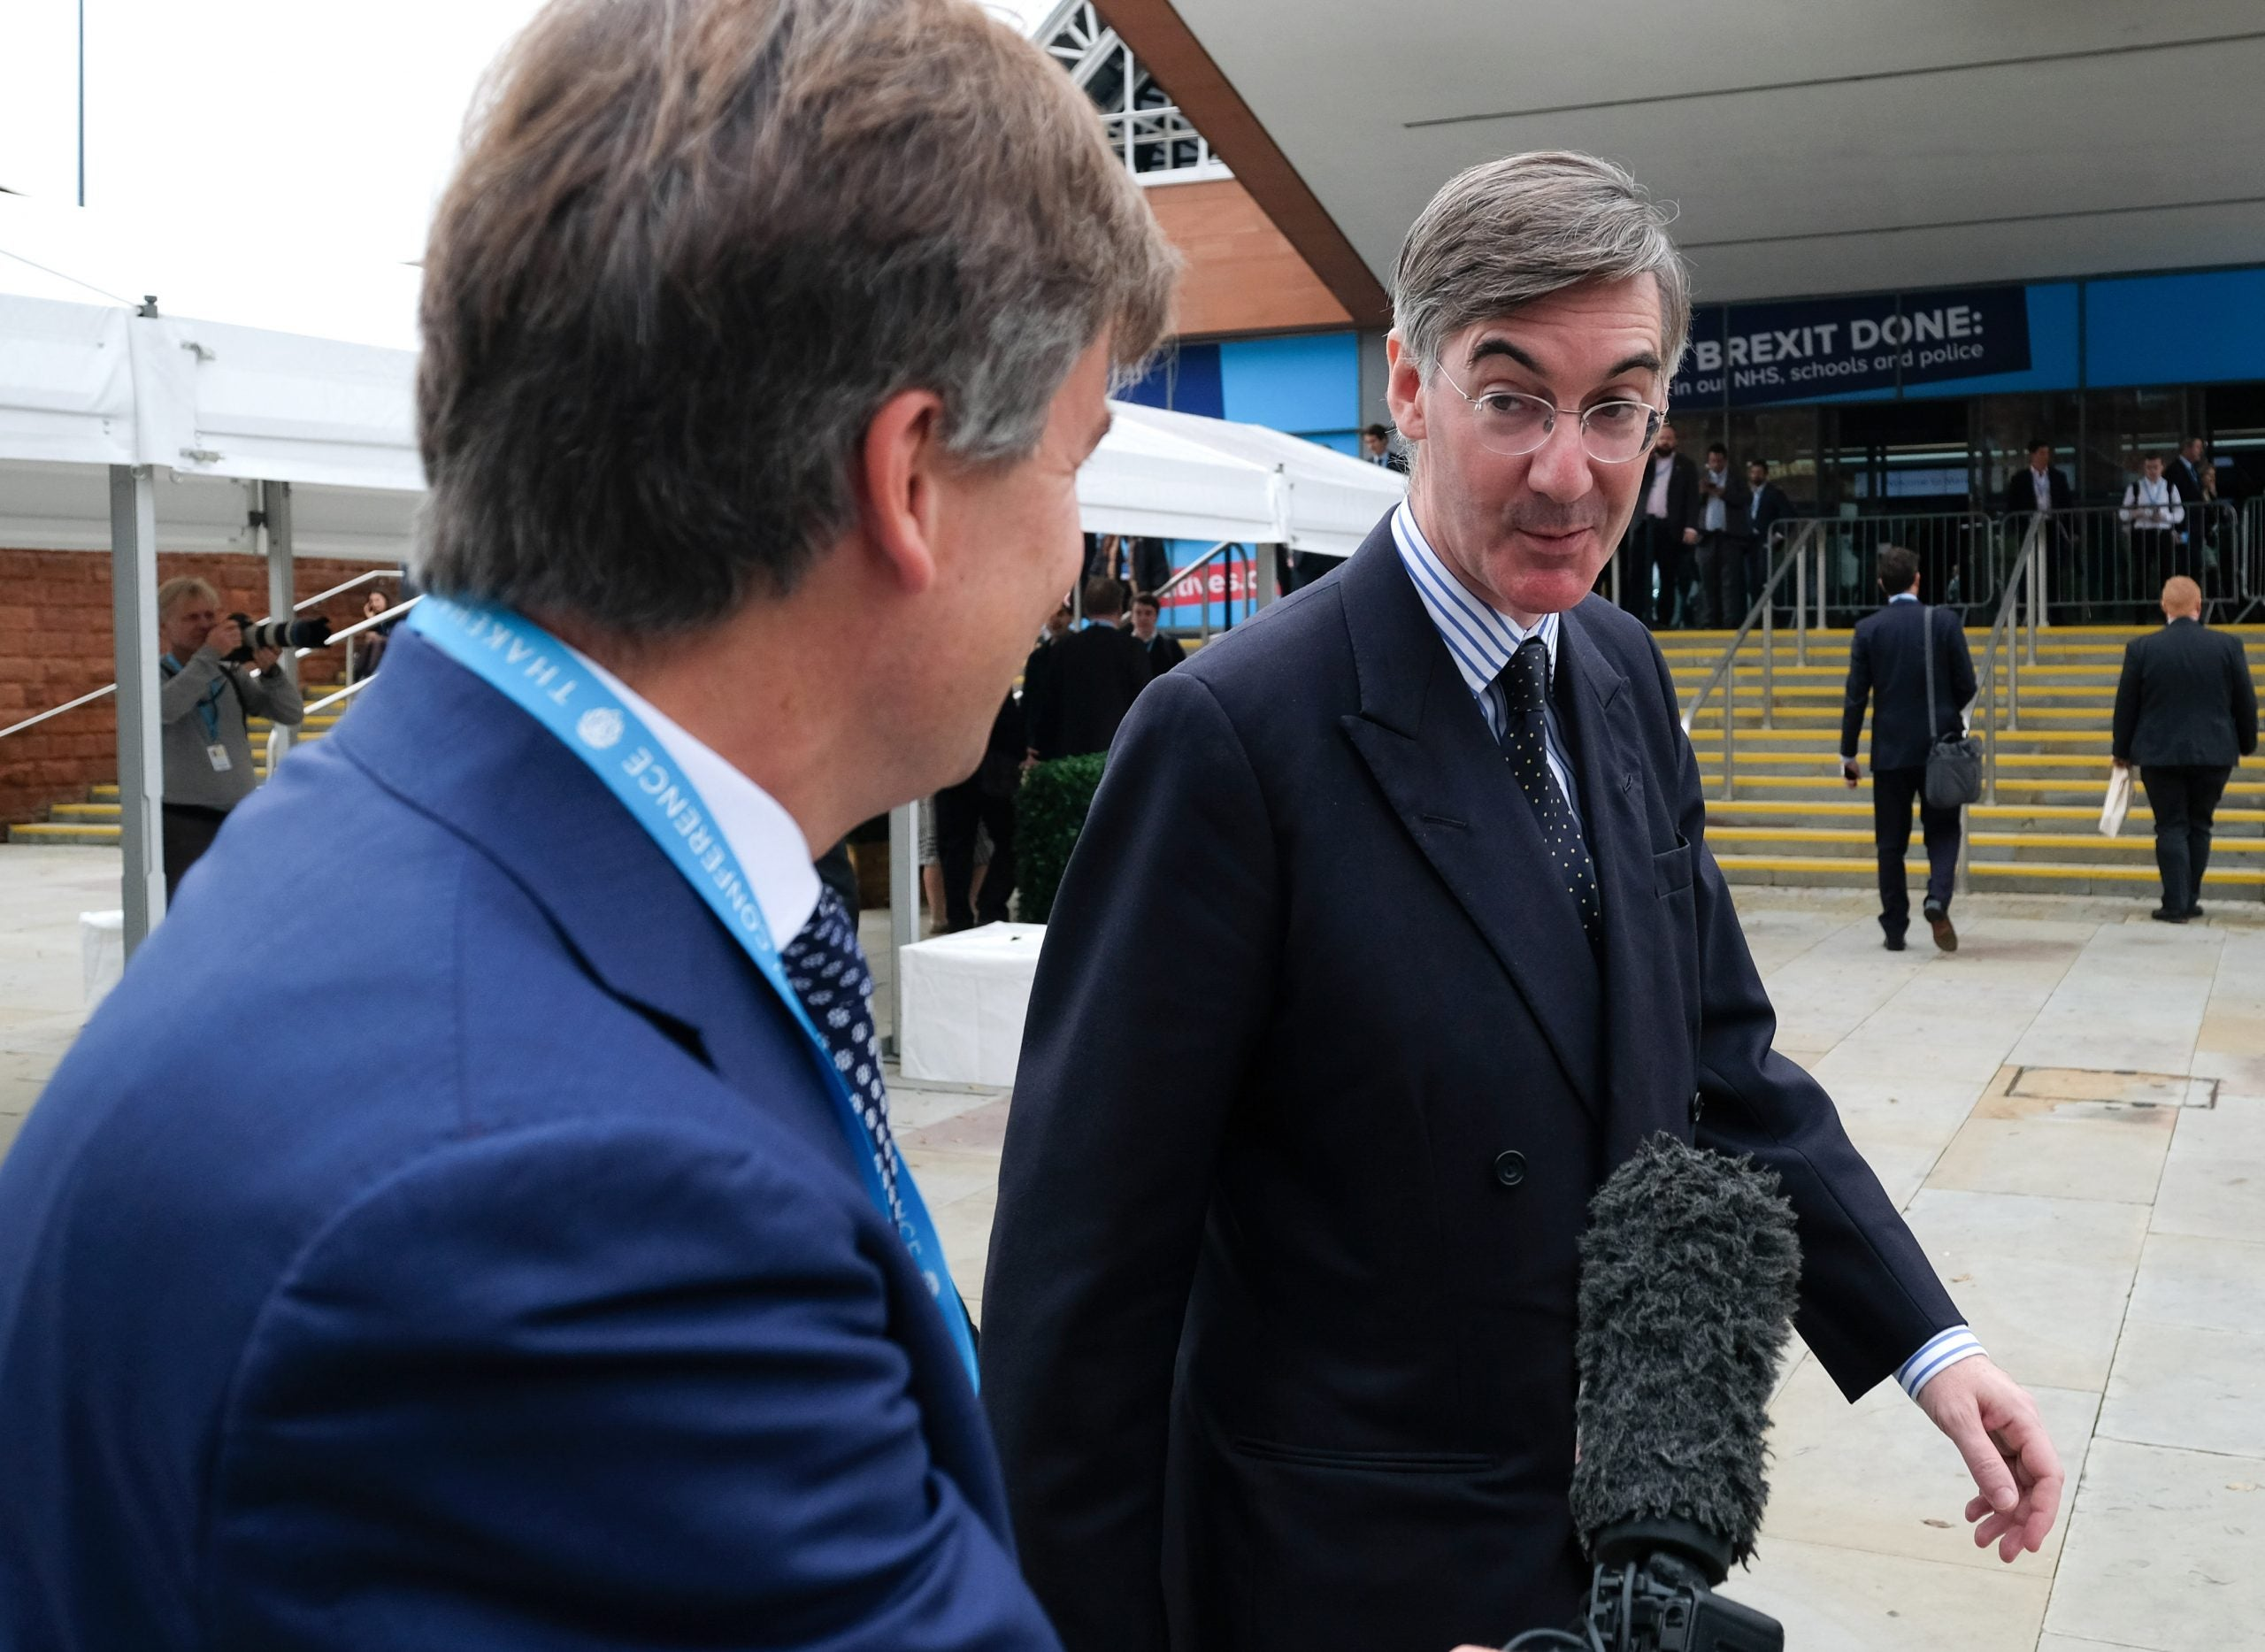 Commons Confidential: Jacob Rees-Mogg goes grime